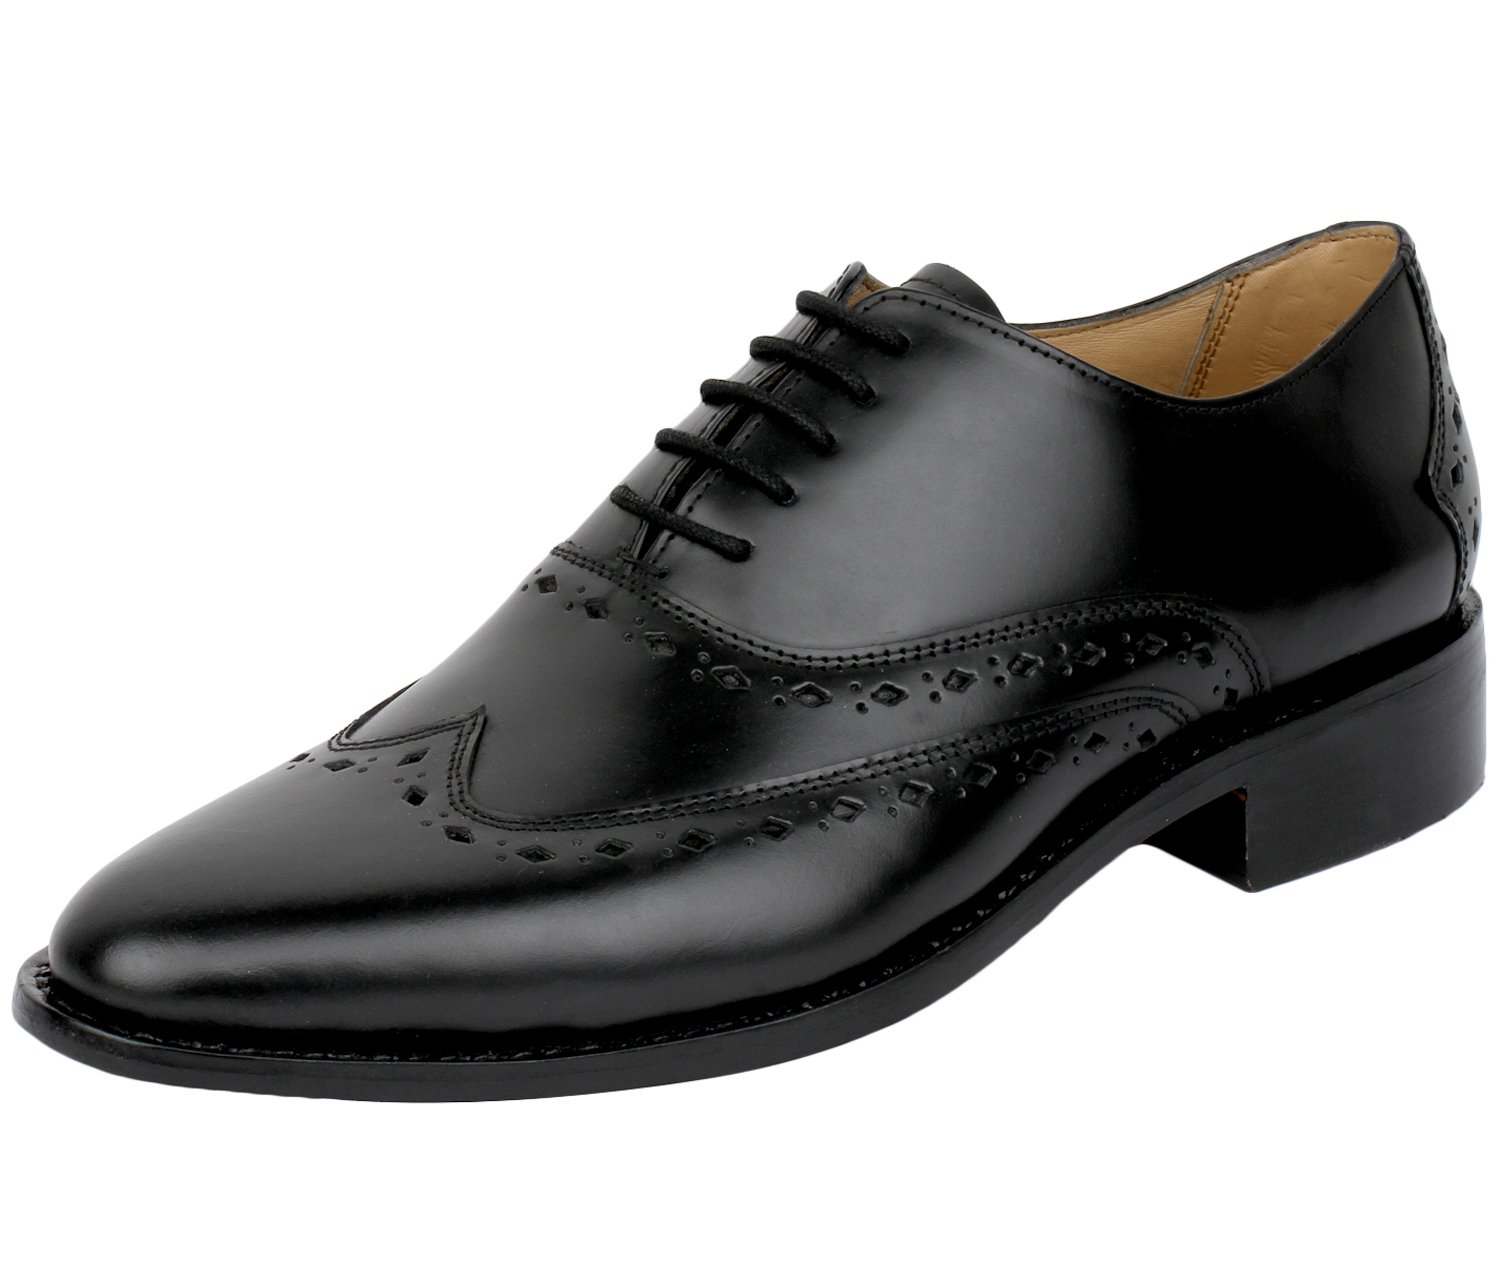 goodyear welted dress shoes